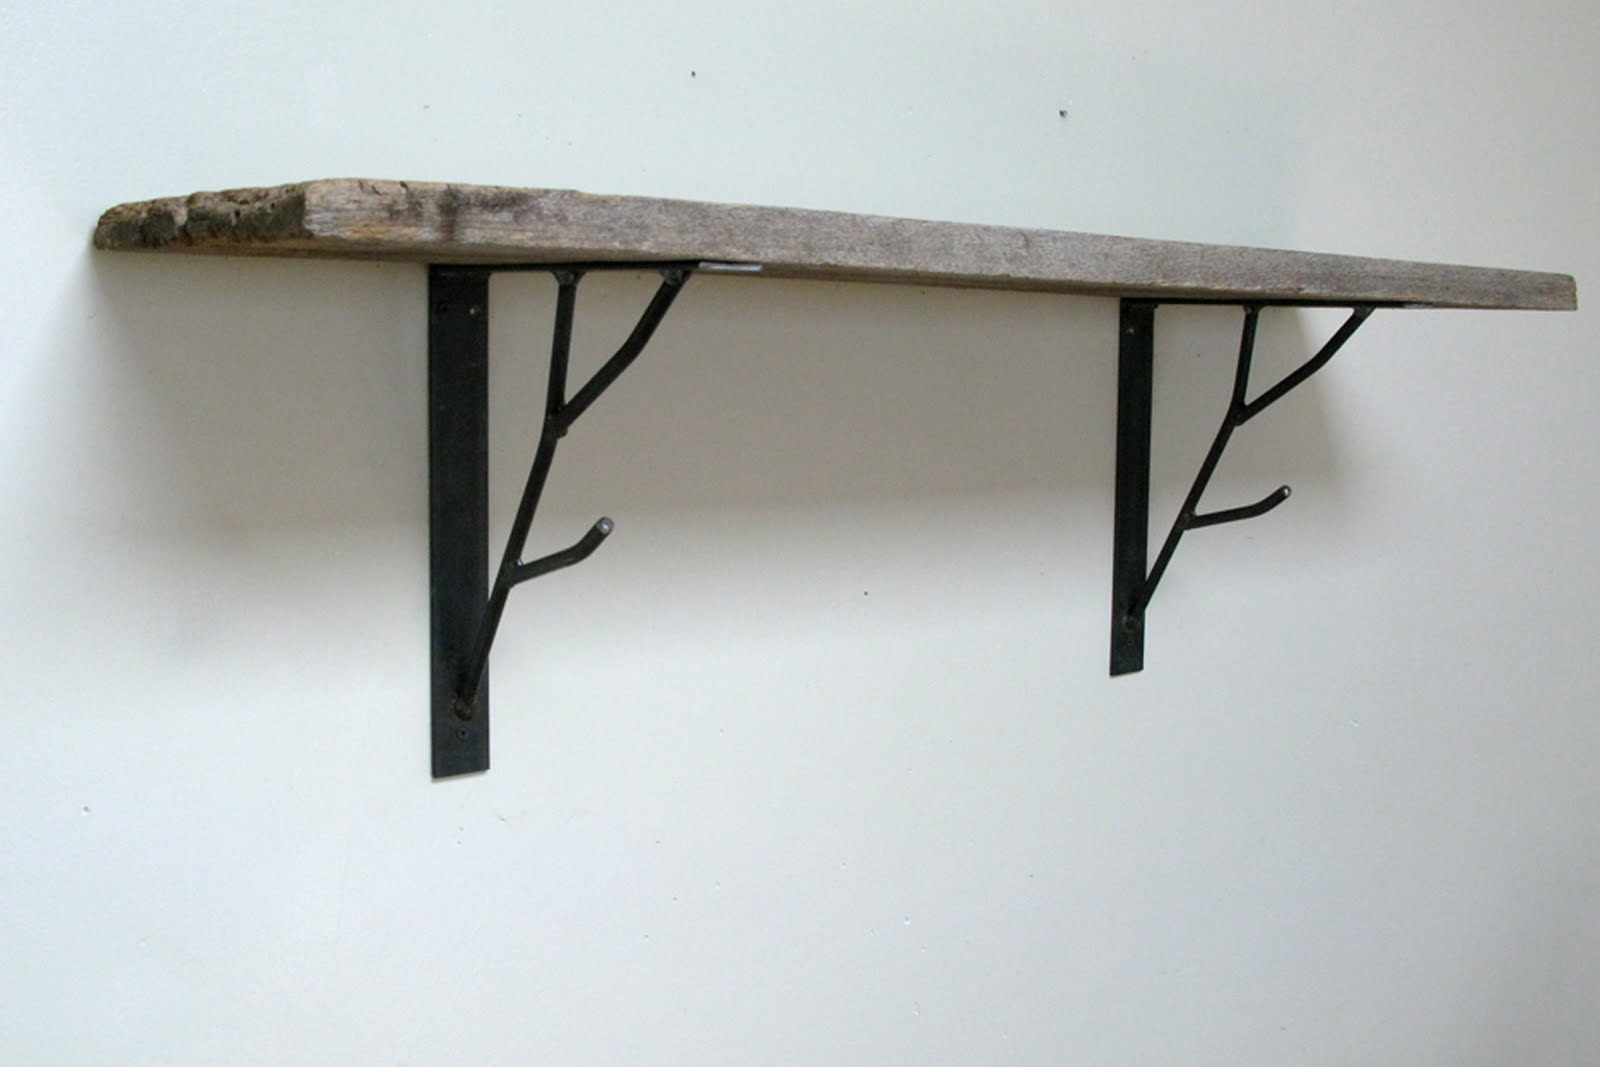 Very Impressive portraiture of Metal Shelf Brackets for Shelving with #5A4F3F color and 1600x1067 pixels